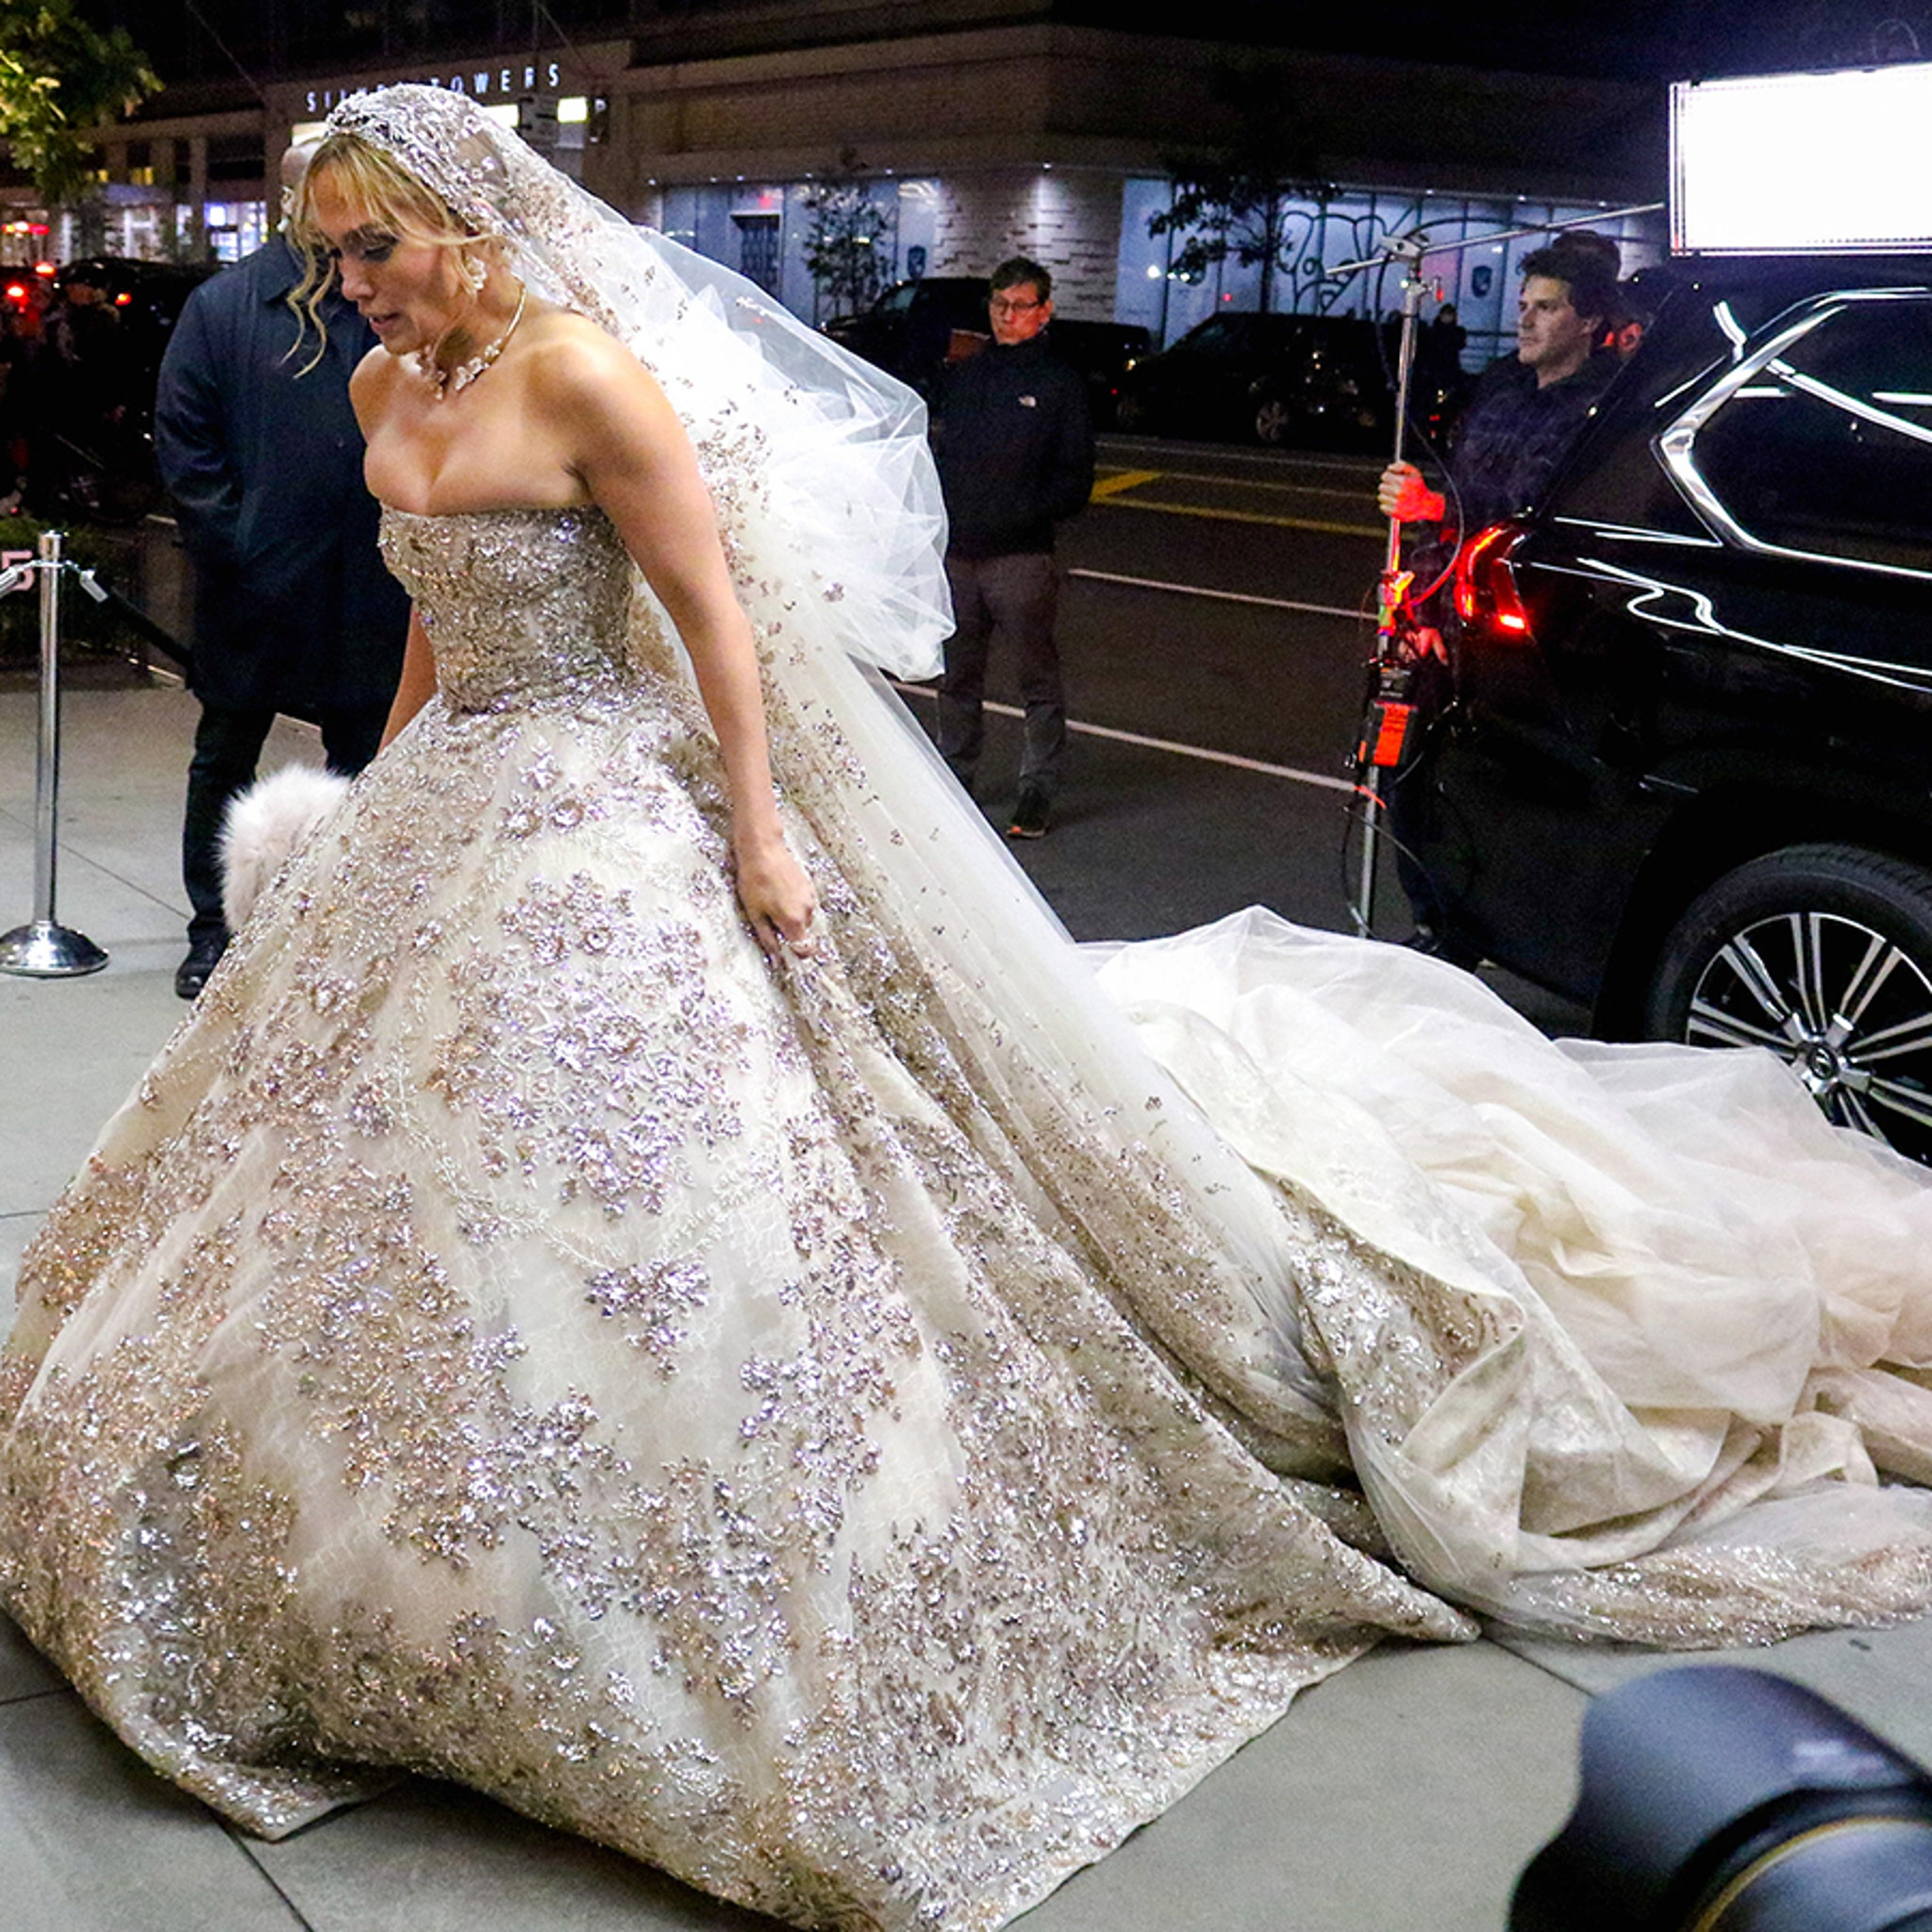 Jennifer Lopez Shows Off Her Wedding Dress ... for a Movie